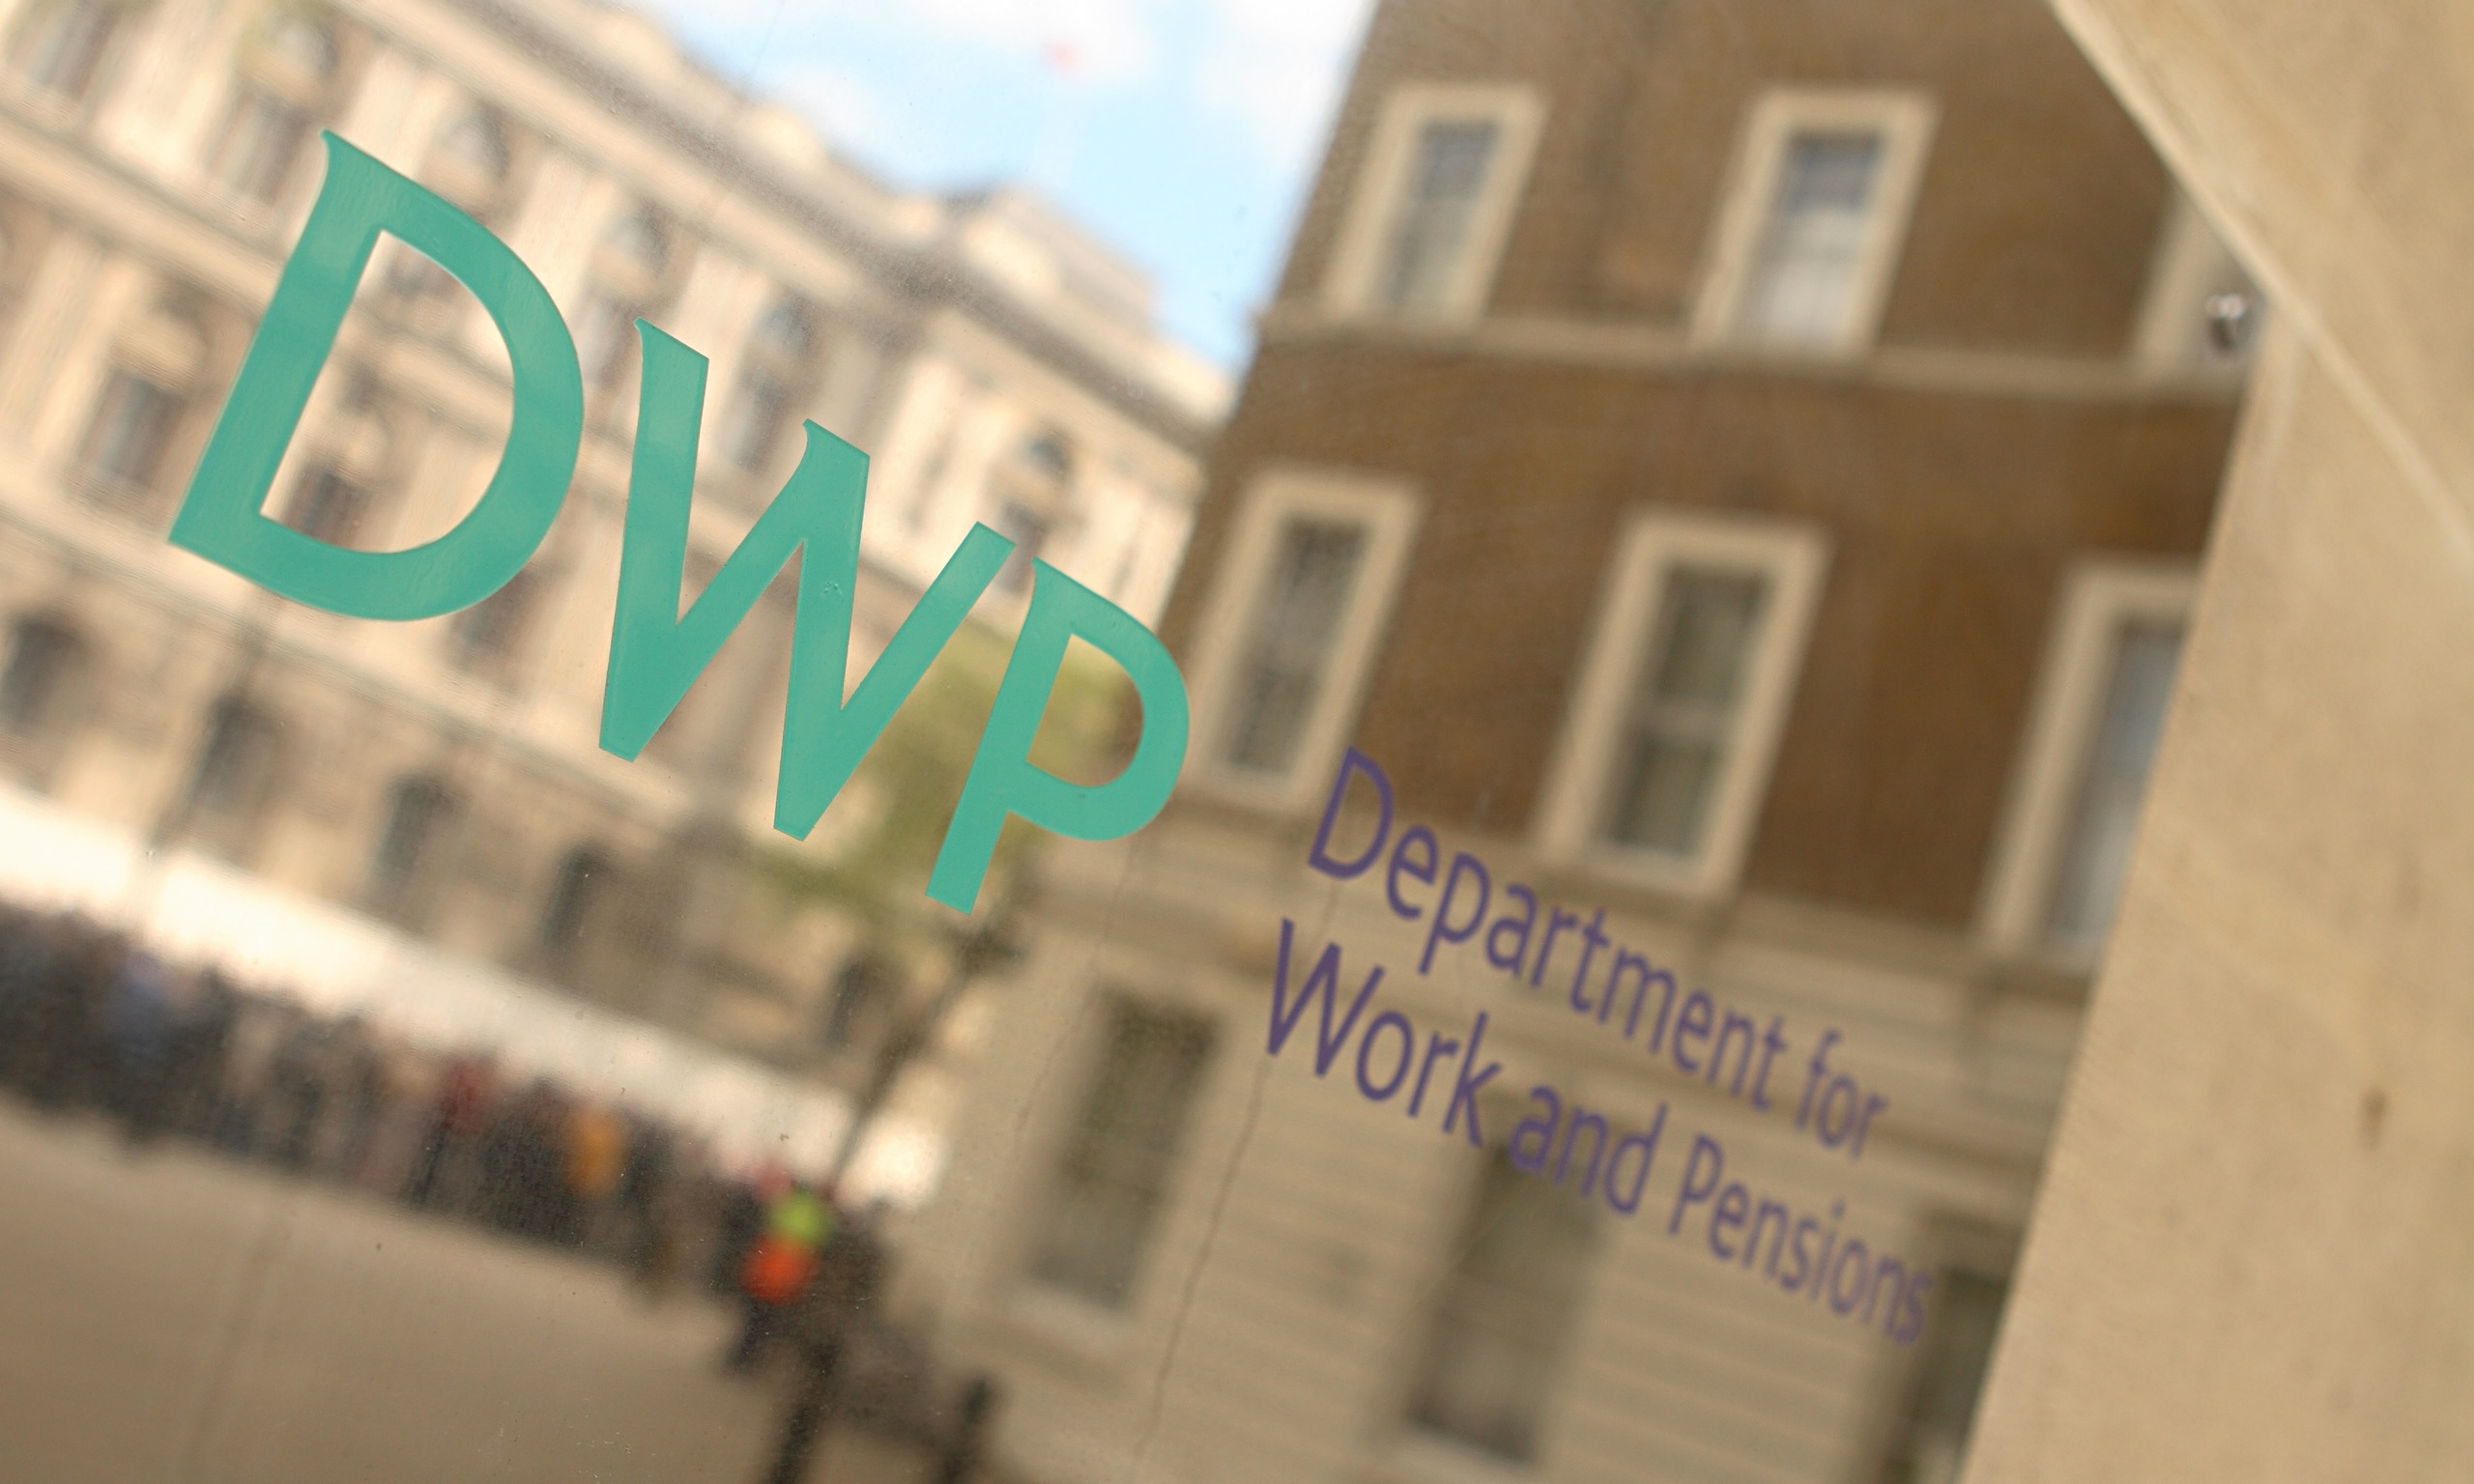 DWP - Government Department for Work and Pensions